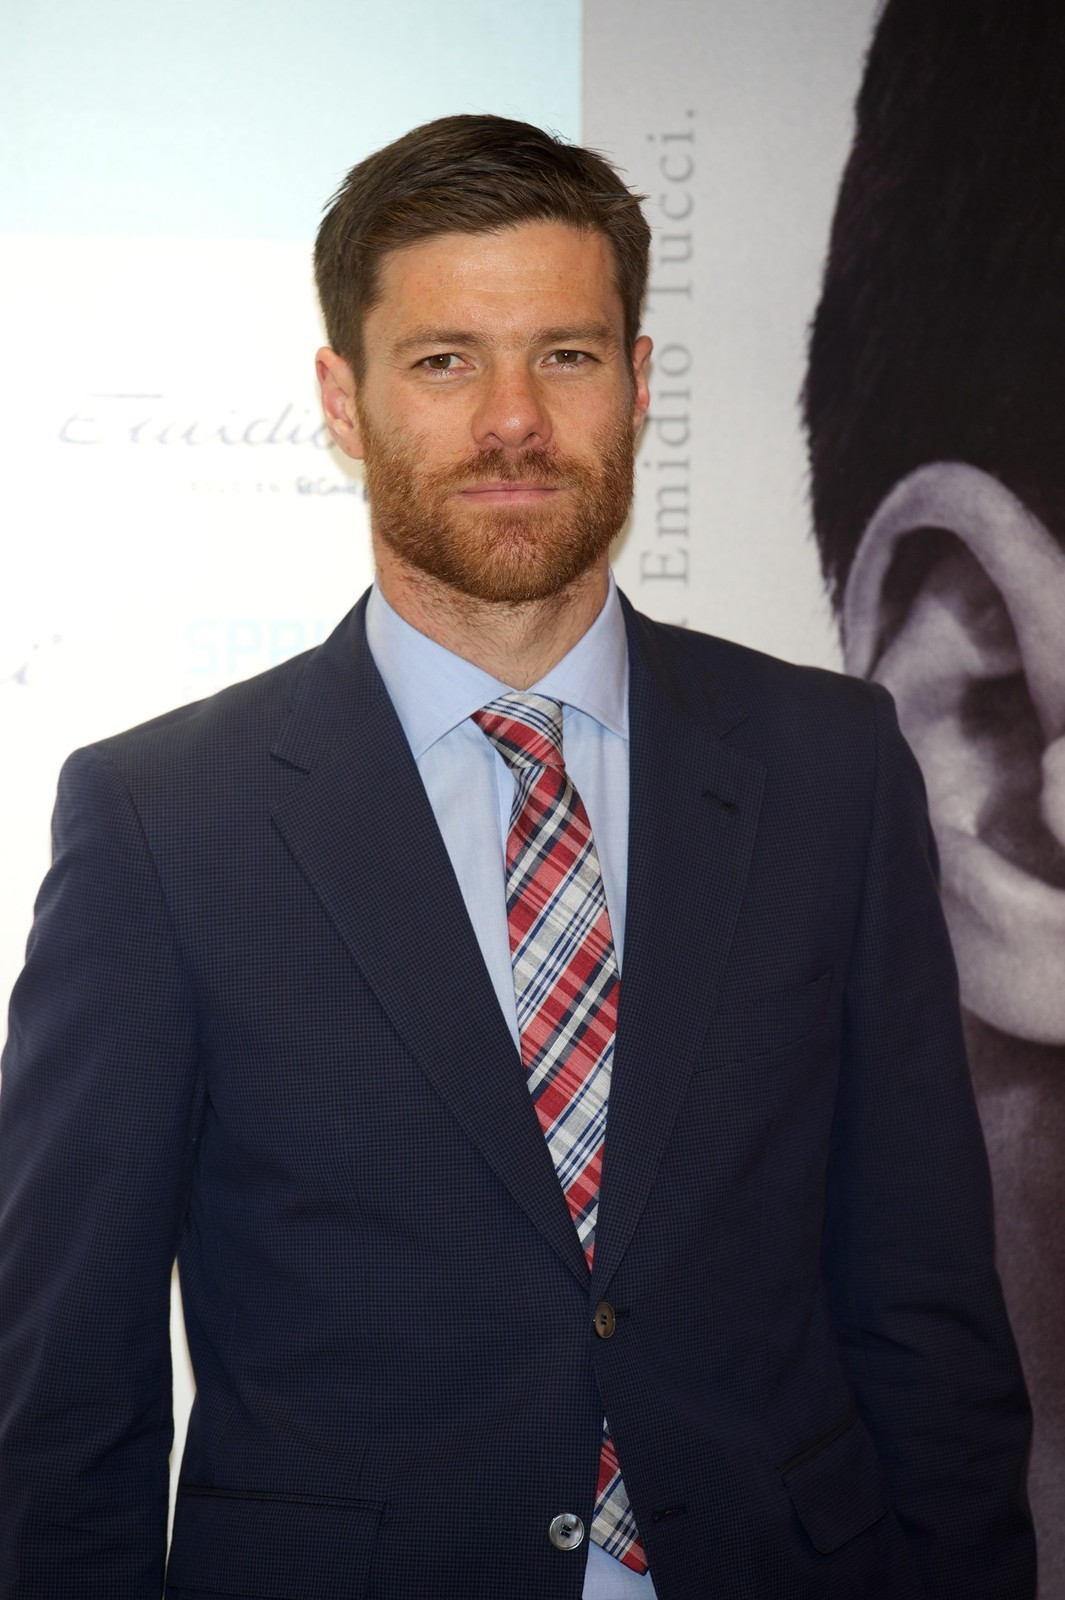 gfsports:  Xabi Alonso presents the new 'Emidio Tucci Black' collection at the El Corte Ingles Serrano store (Part I)  And he's wearing the plaid tie… it's like he read my mind from across the globe.